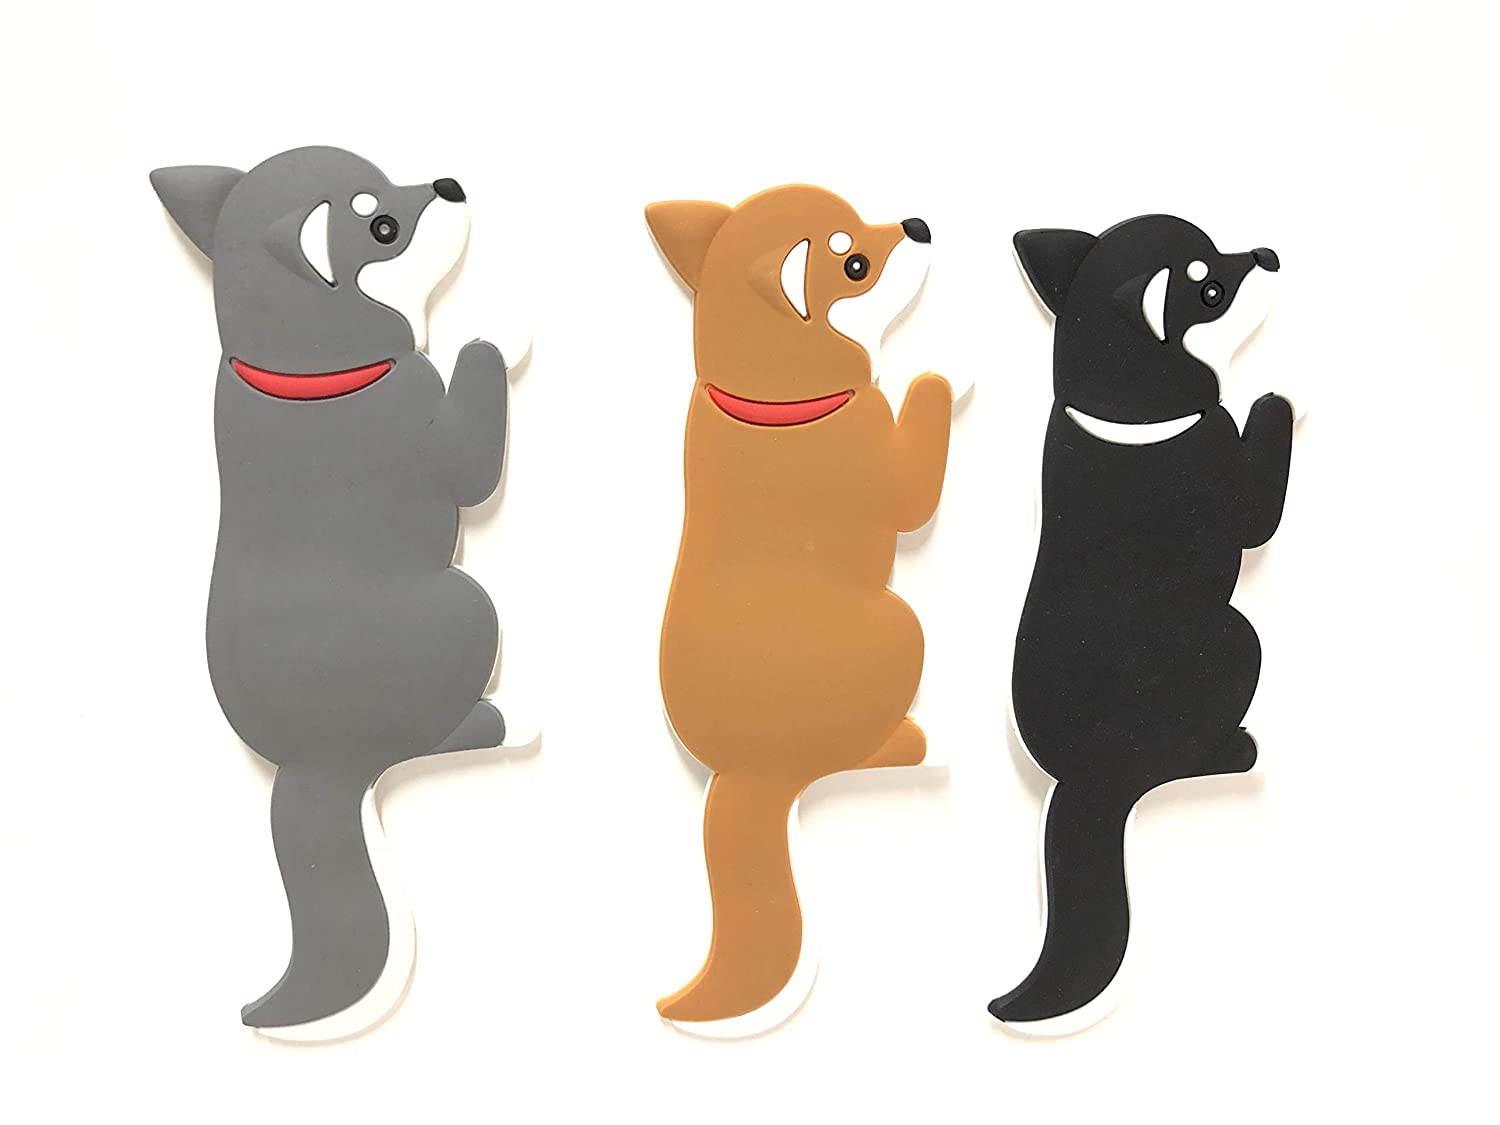 Dog Magnets.Refrigerator,Office, School & Kitchen.Tail bends for hanging Keys,Potholder,Pictures,Memos,Hangers and more.Sticks to Fridge, Whiteboard, Washing Machine, Dryer and any Magnetic Surface.